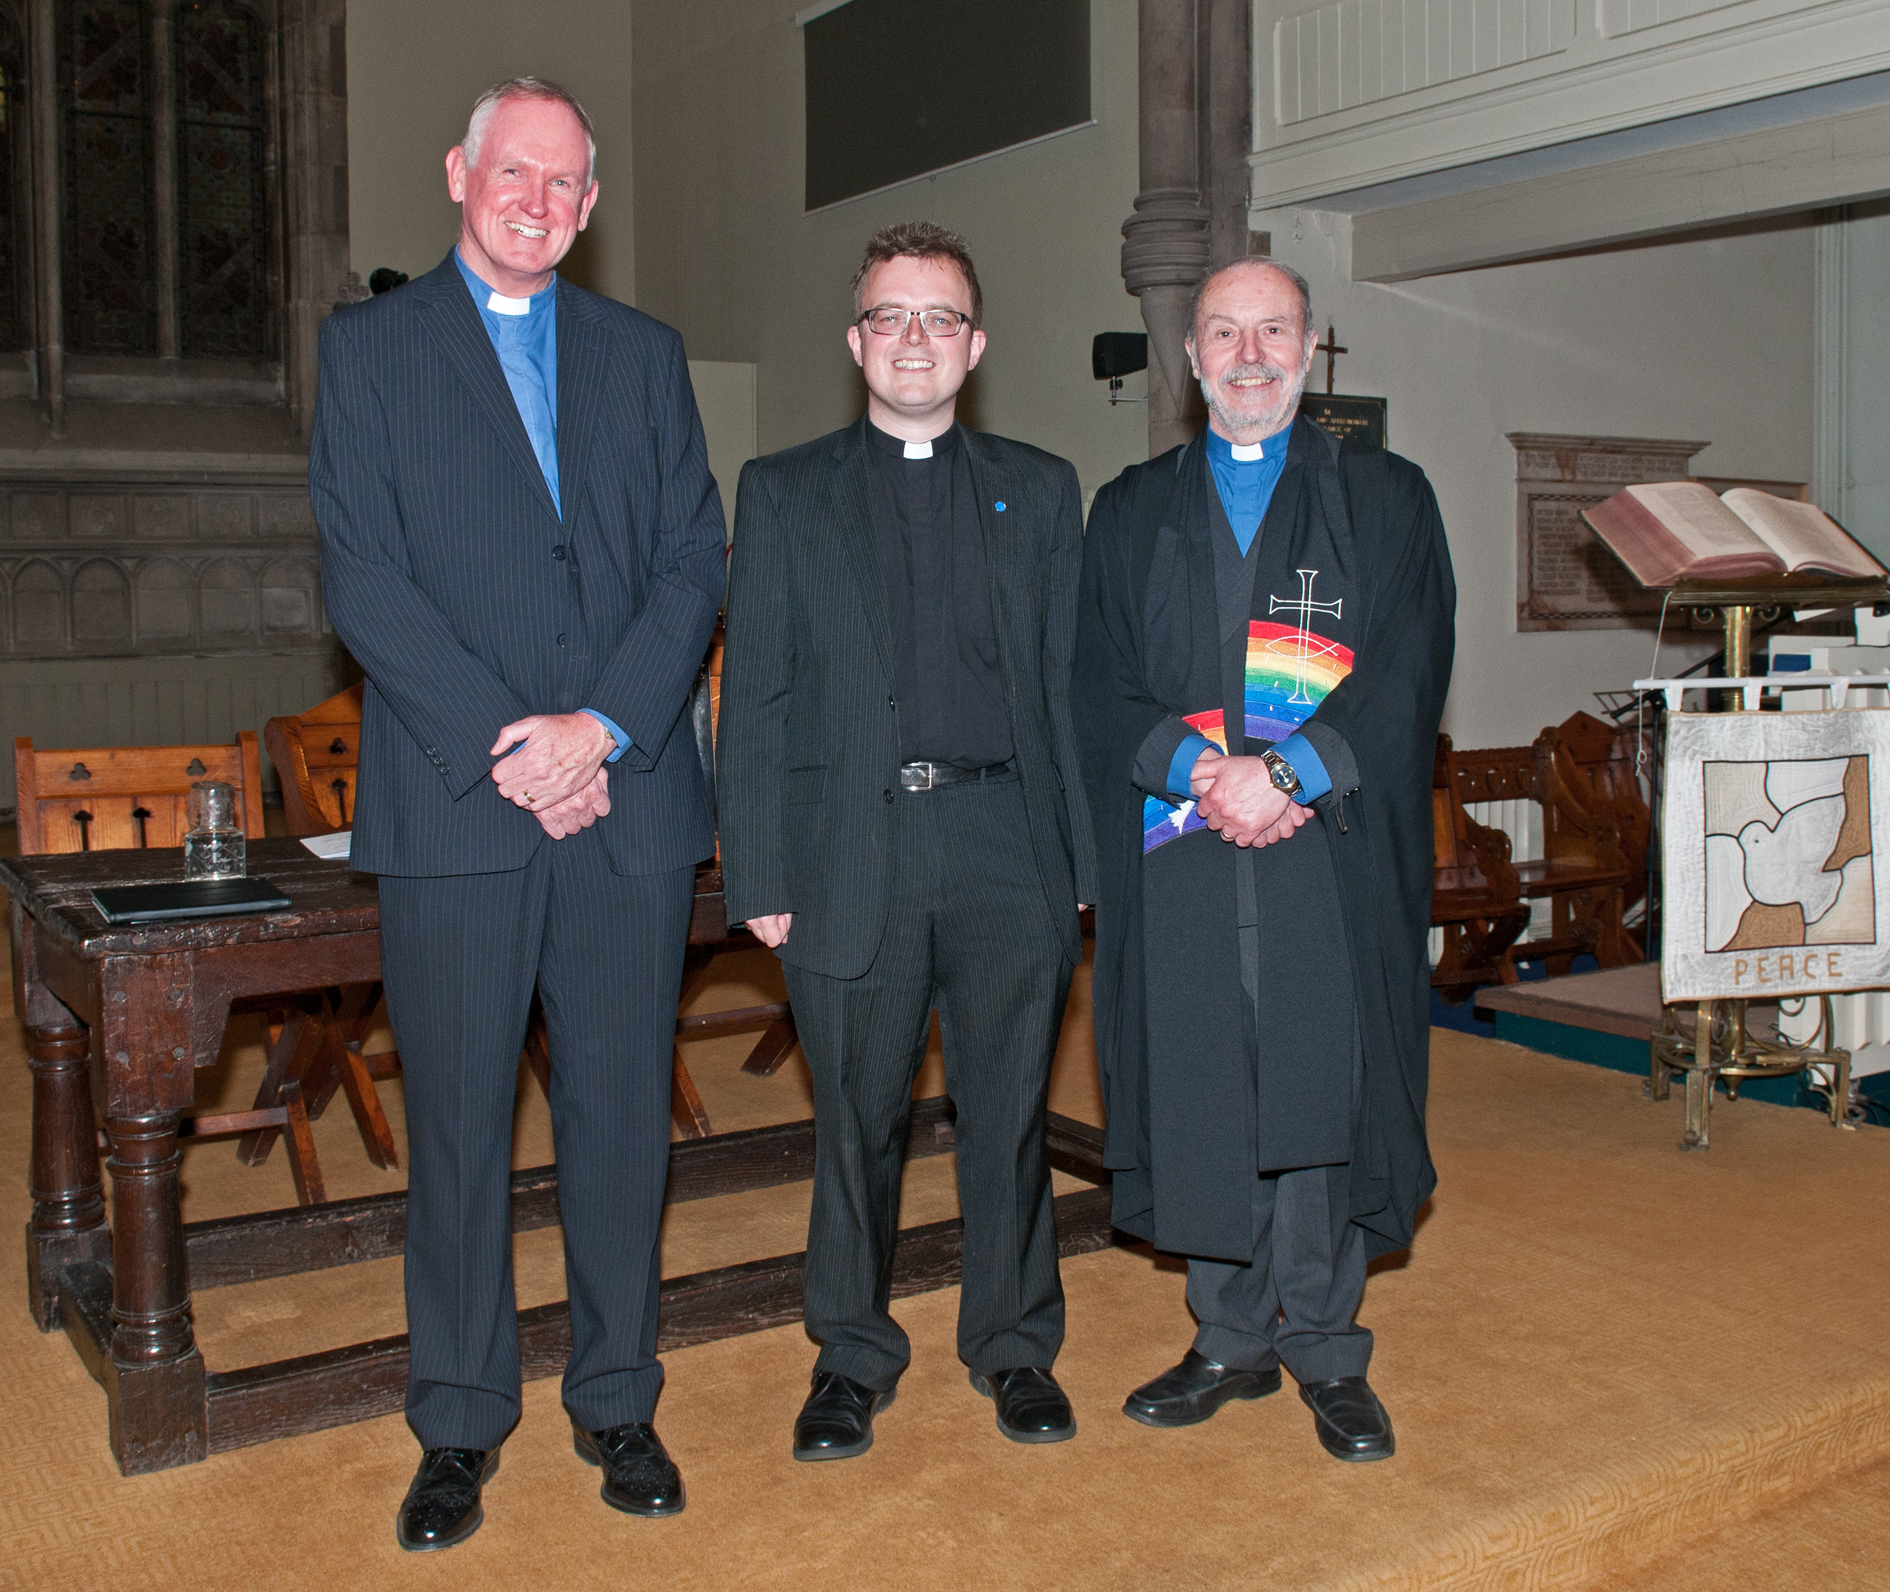 NEW START: The new minister Rev Andrew Mann-Ray, centre, with past minister Rev Gerald England, left and Rev Roy Lowes.